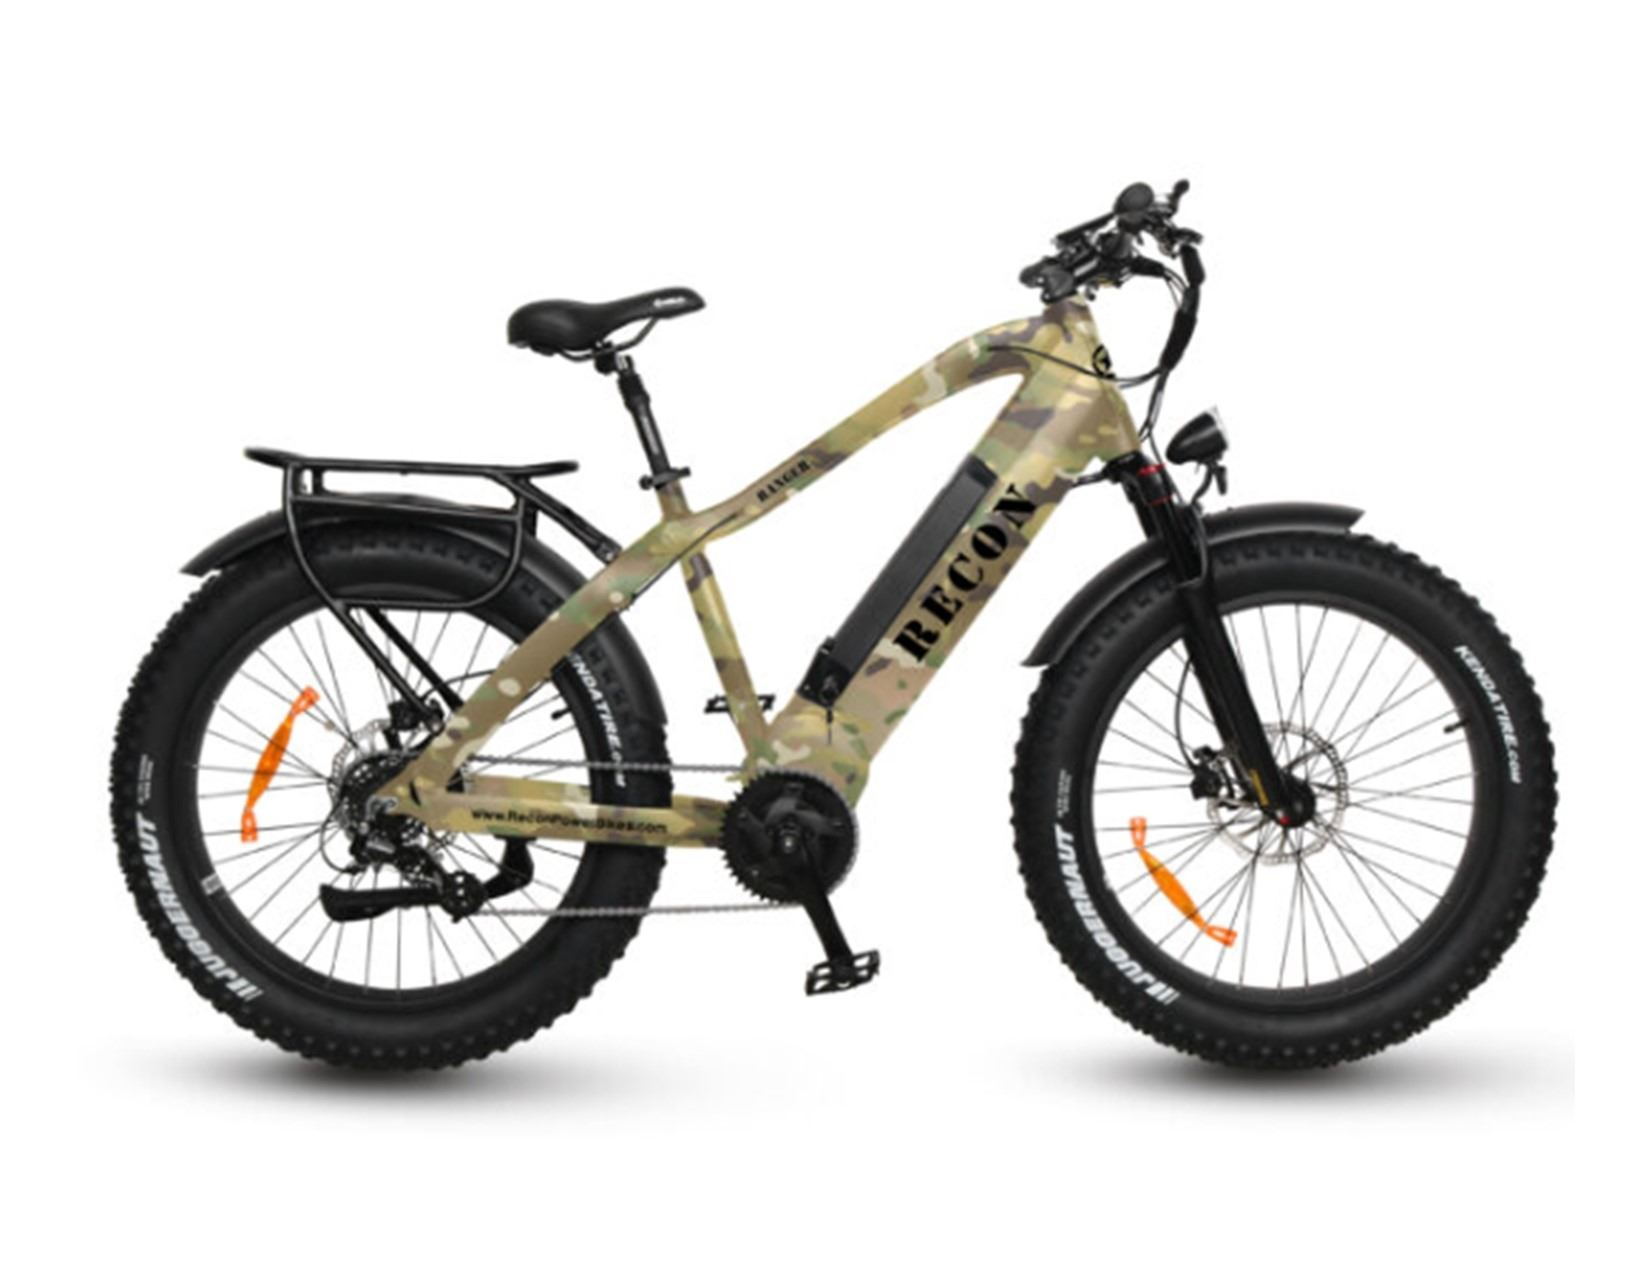 ROCKIN B OUTDOORS: Recon Ranger Power E-Bike with Firearm/Bow Holder